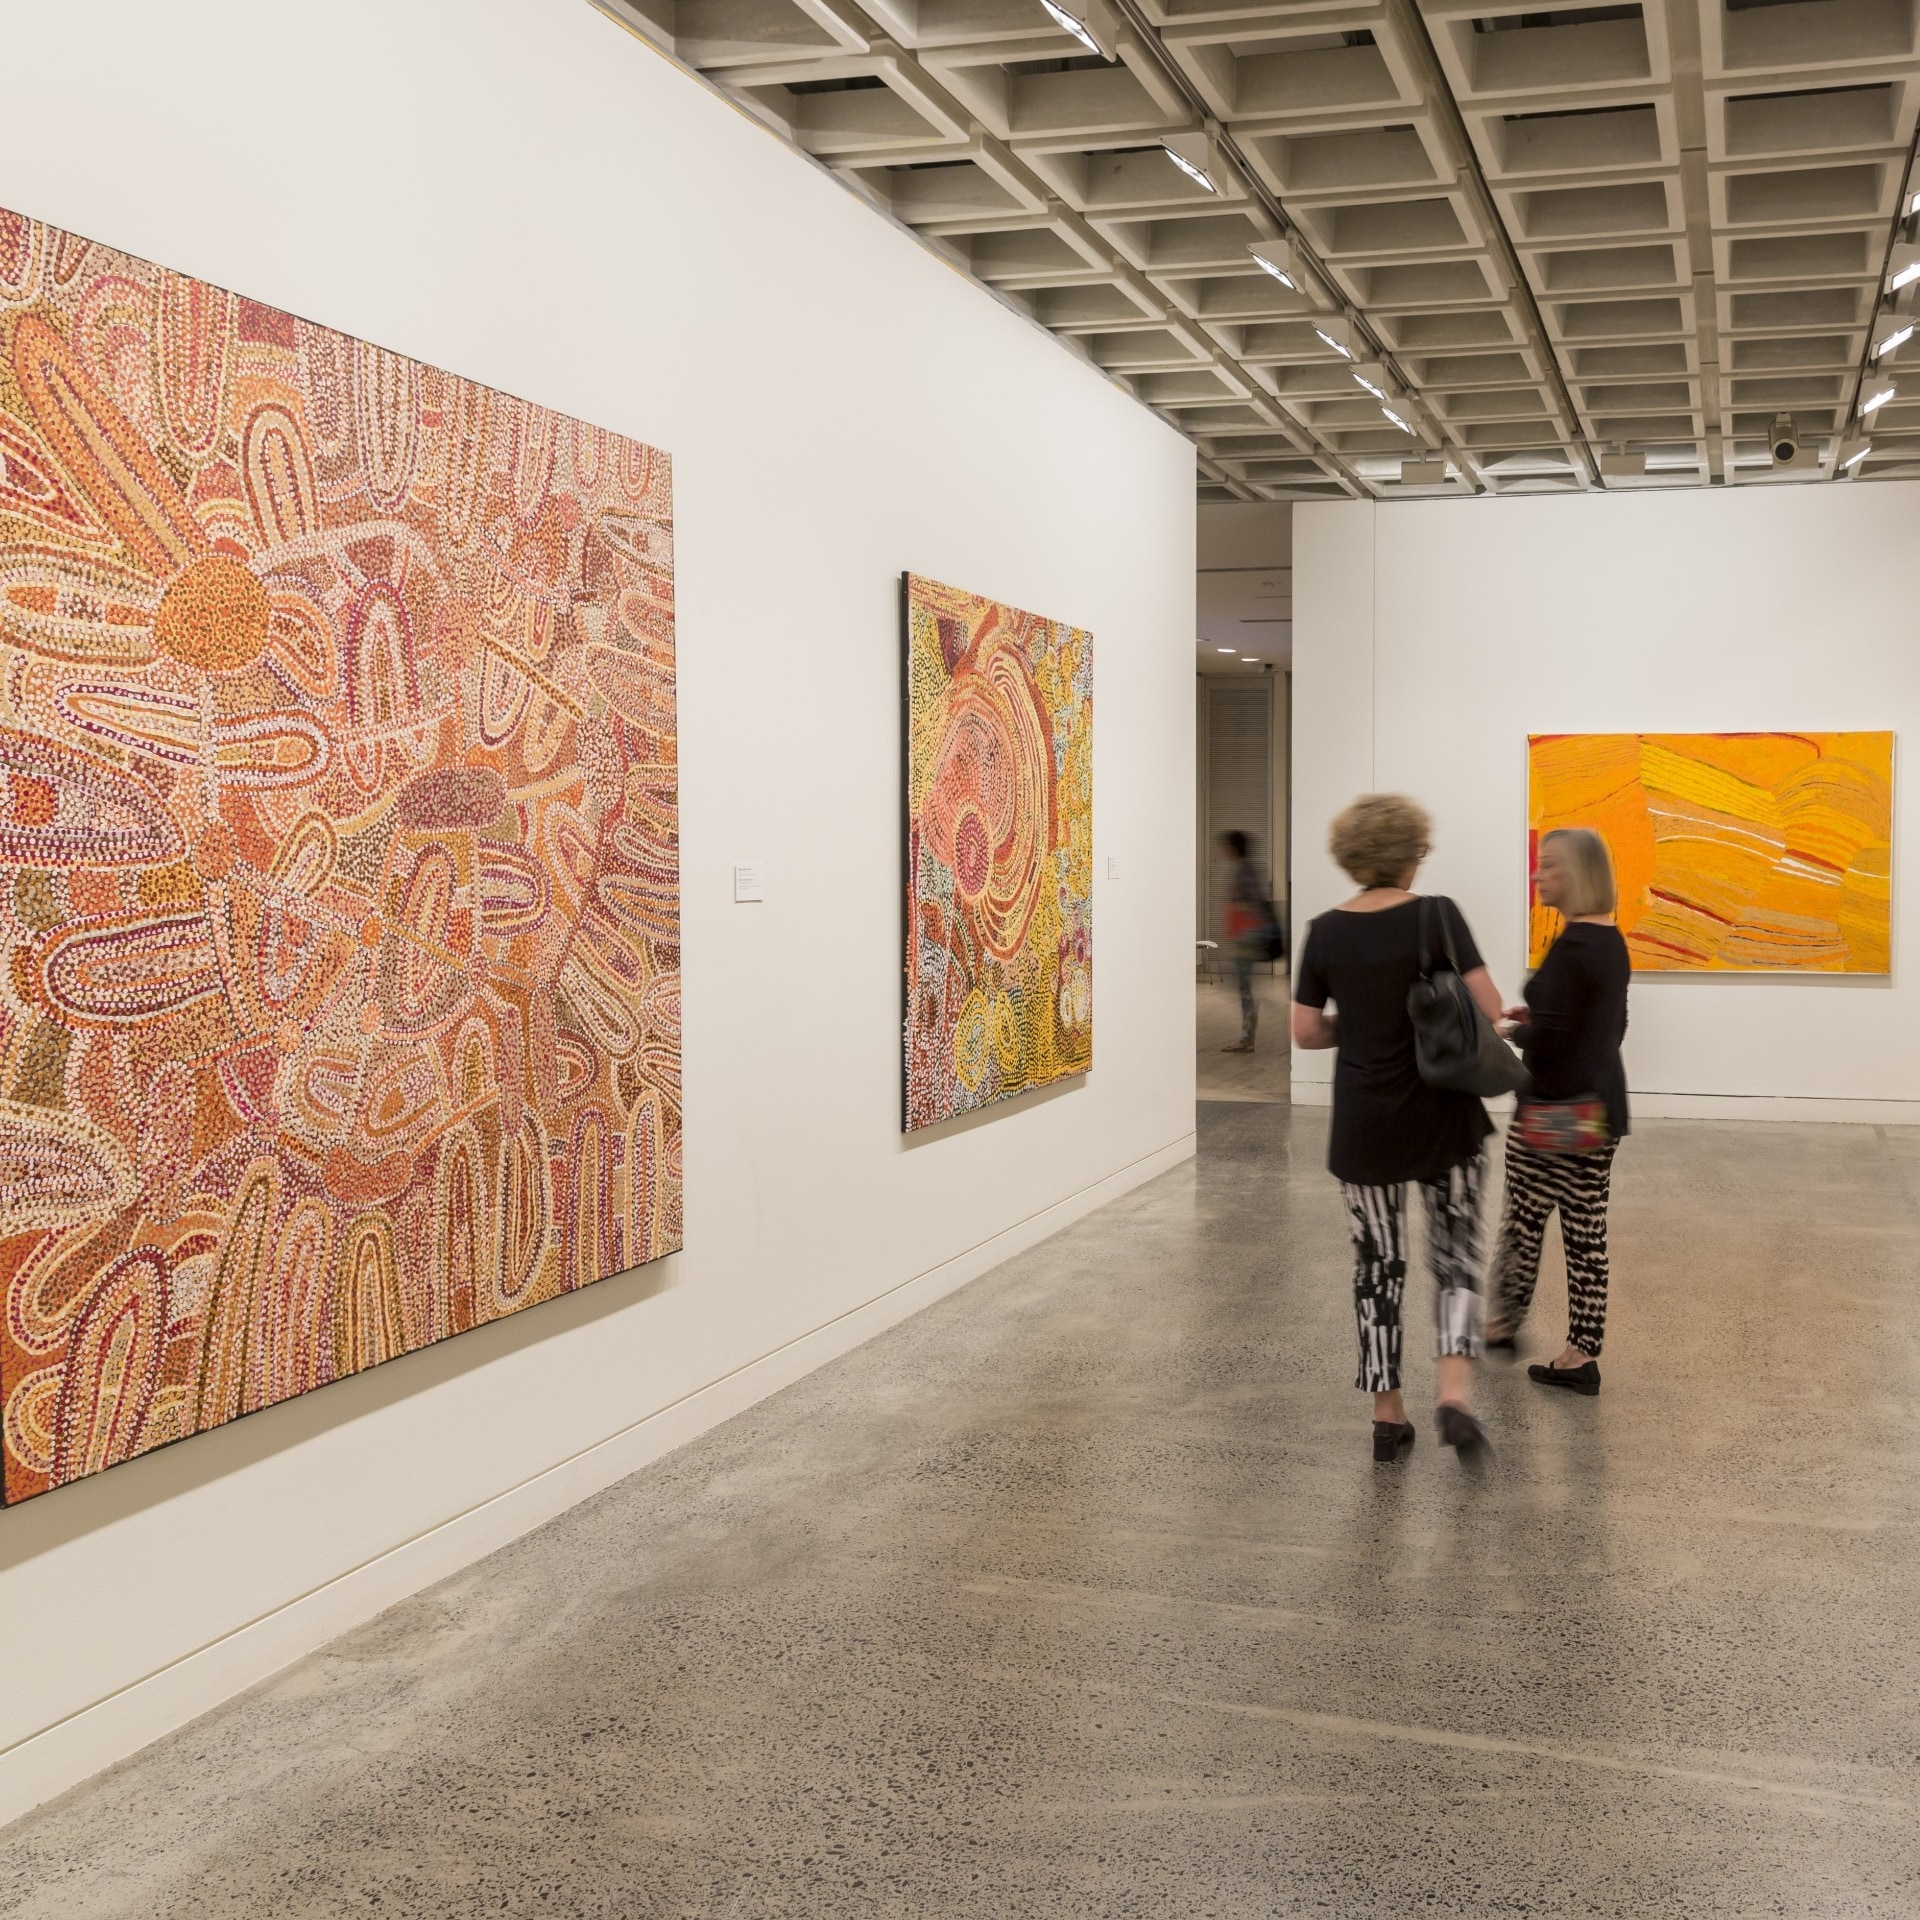 Art Gallery of New South Wales in Sydney© Daniel Boud, Destination New South Wales